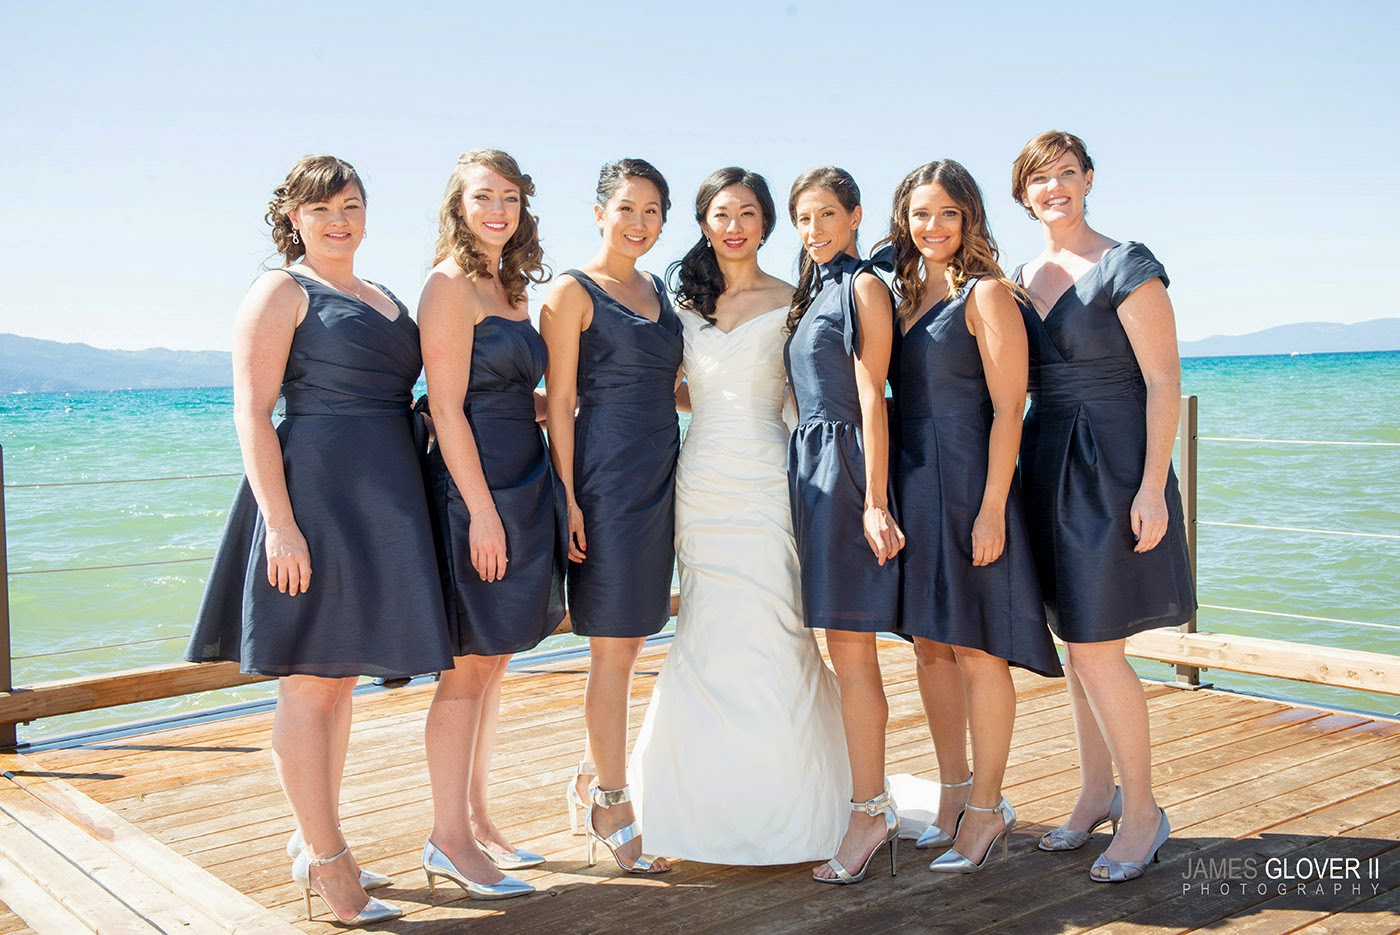 Navy Bridesmaids Dresses | James Glover Photography | Take the Cake Events